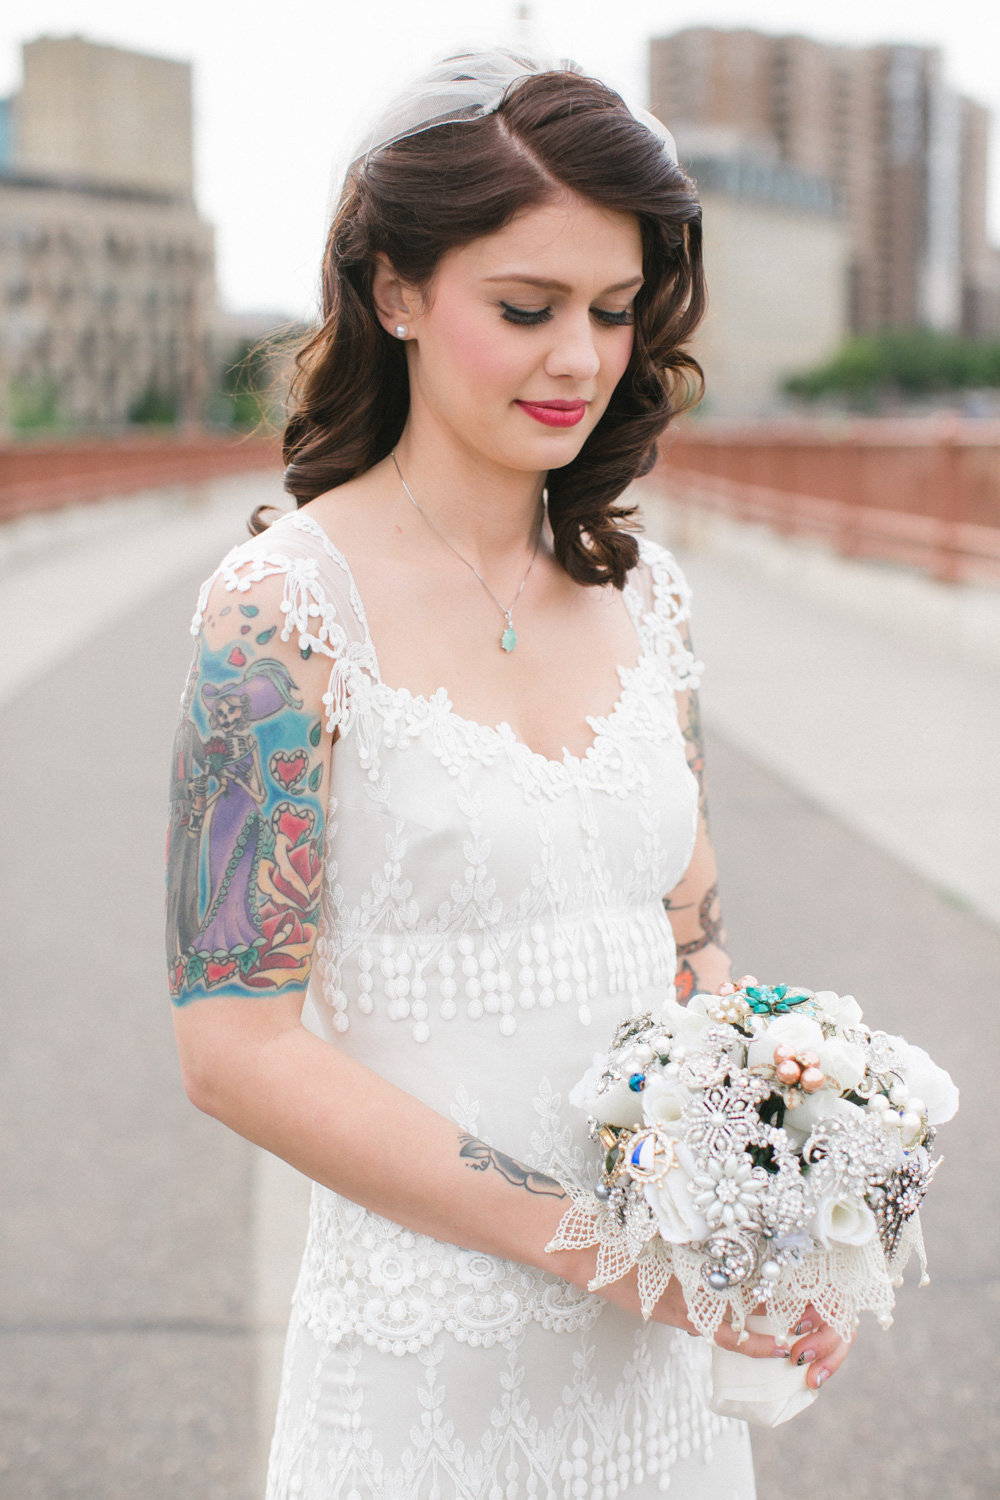 Brett-Dorrian-Minneapolis-Minnesota-Wedding-Makeup-Hair-and-Photography